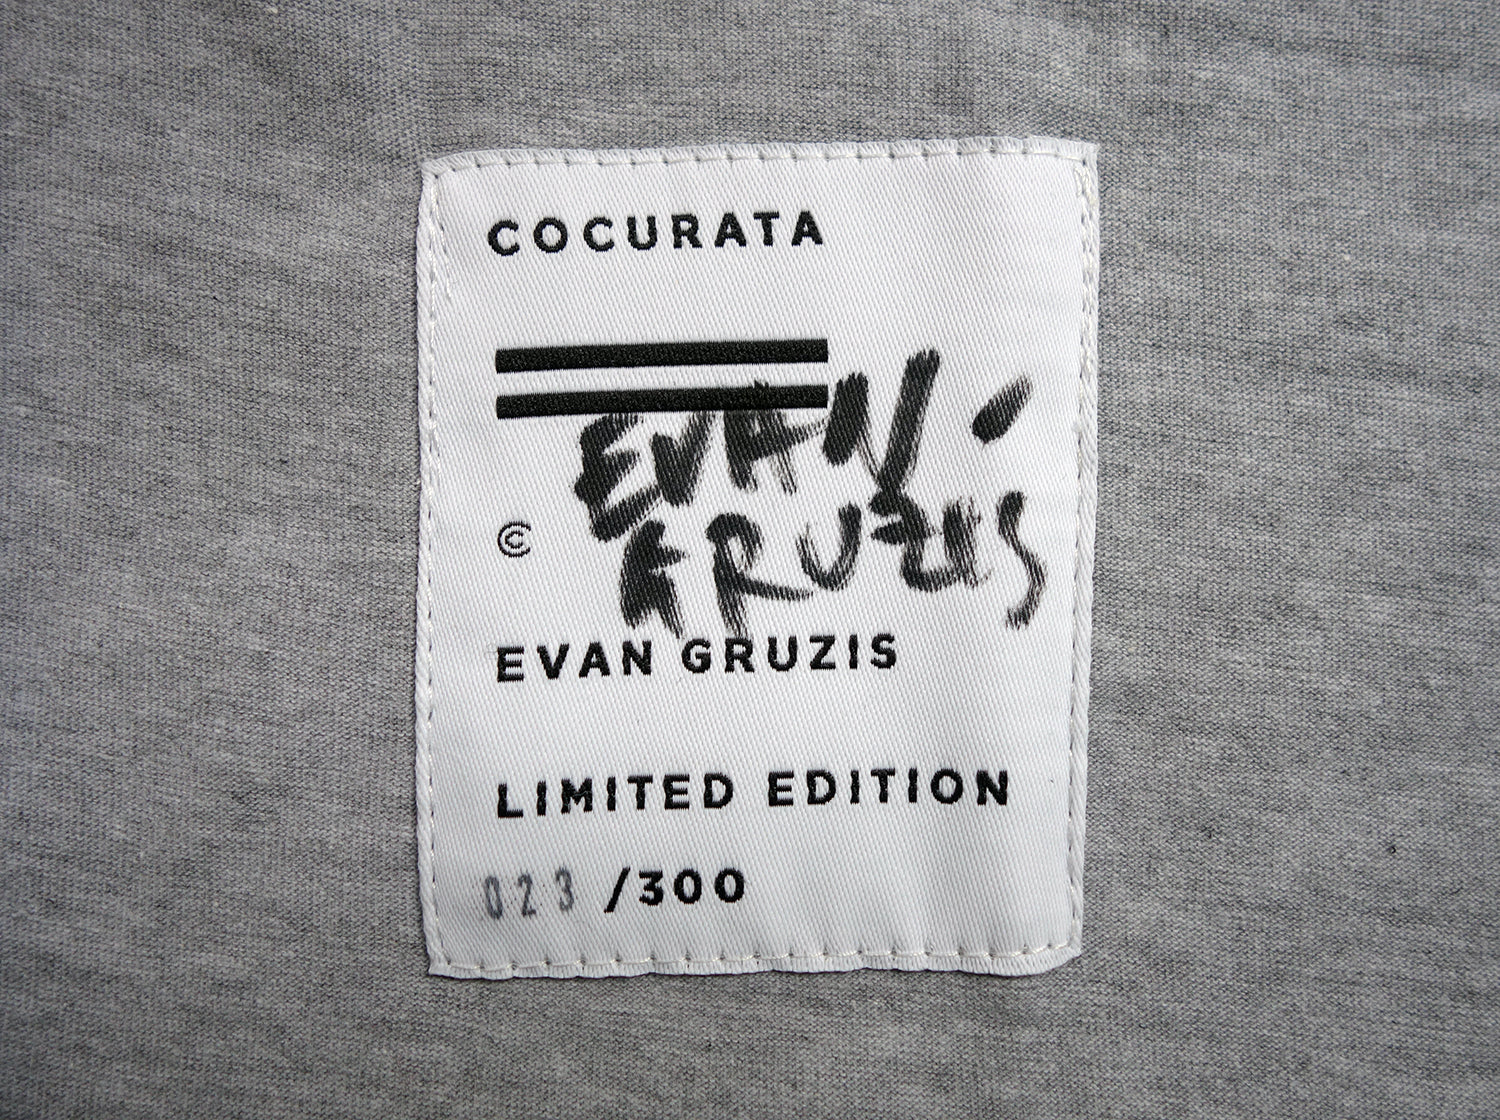 COCURATA RESORT 16 VISIONQUEST EVAN GRUZIS 1 OF 1 AUTOGRAPH TEE new york george benias george gorrow art fashion denim t-shirt tee knit scarf paul insect bast trudy benson misaki kawai donald baechler rostarr evan gruzis matt jones steve more michael dotson brian willmont josh reames デニム ブランド 通販 ニット パーカー パンツ Tシャツ スカート ドレス メンズ レディーズ アート 芸術 美術 ファッション 洋服